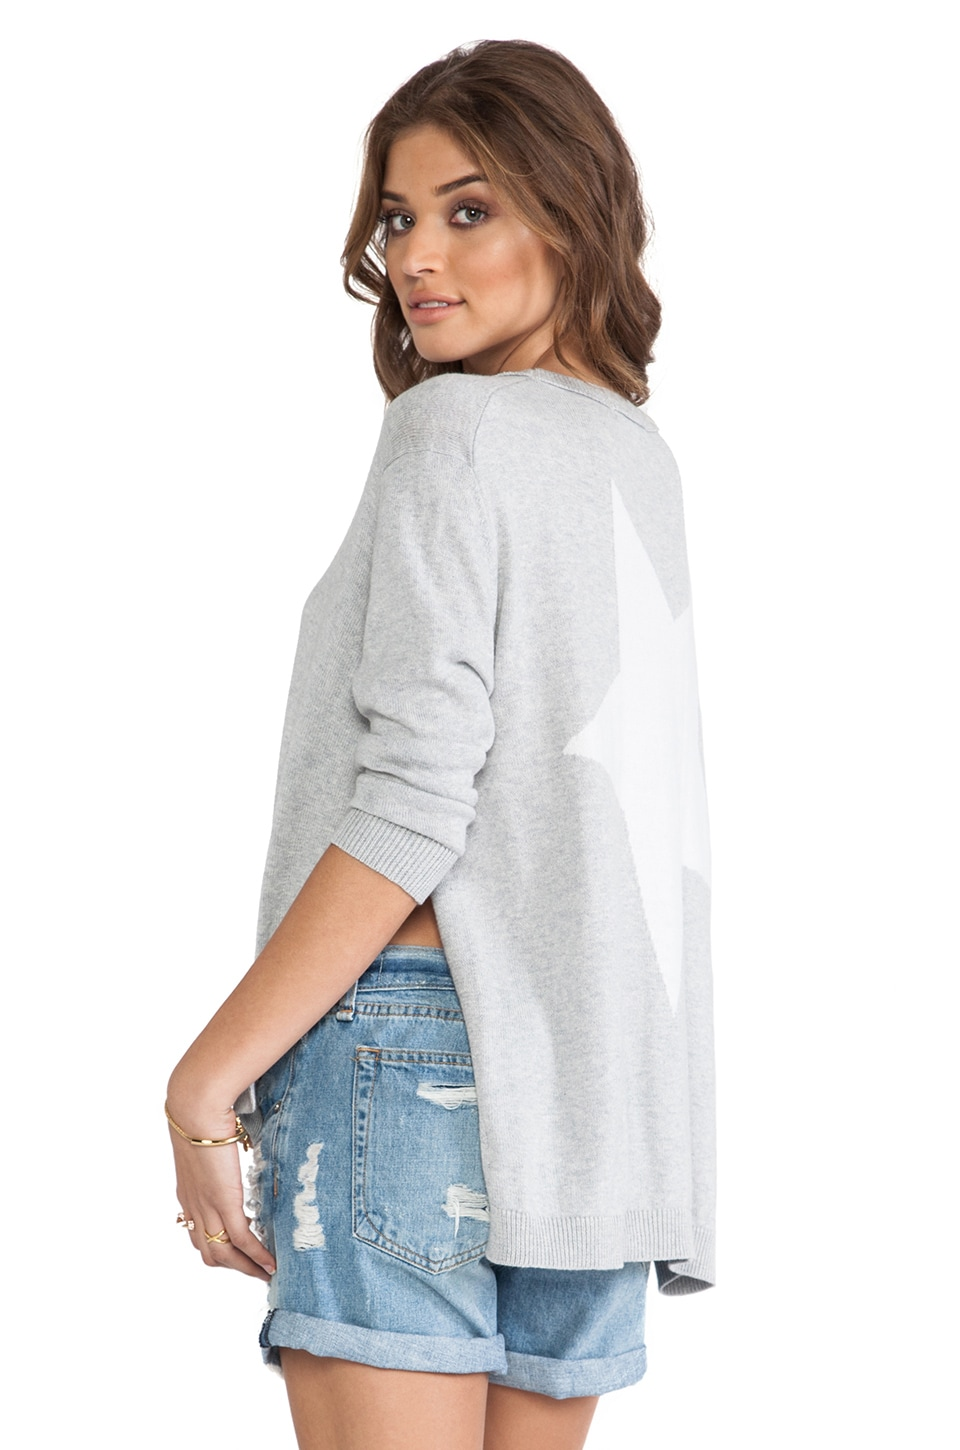 360 Sweater Celeste Star Sweater in Heather Grey & Ivory Star